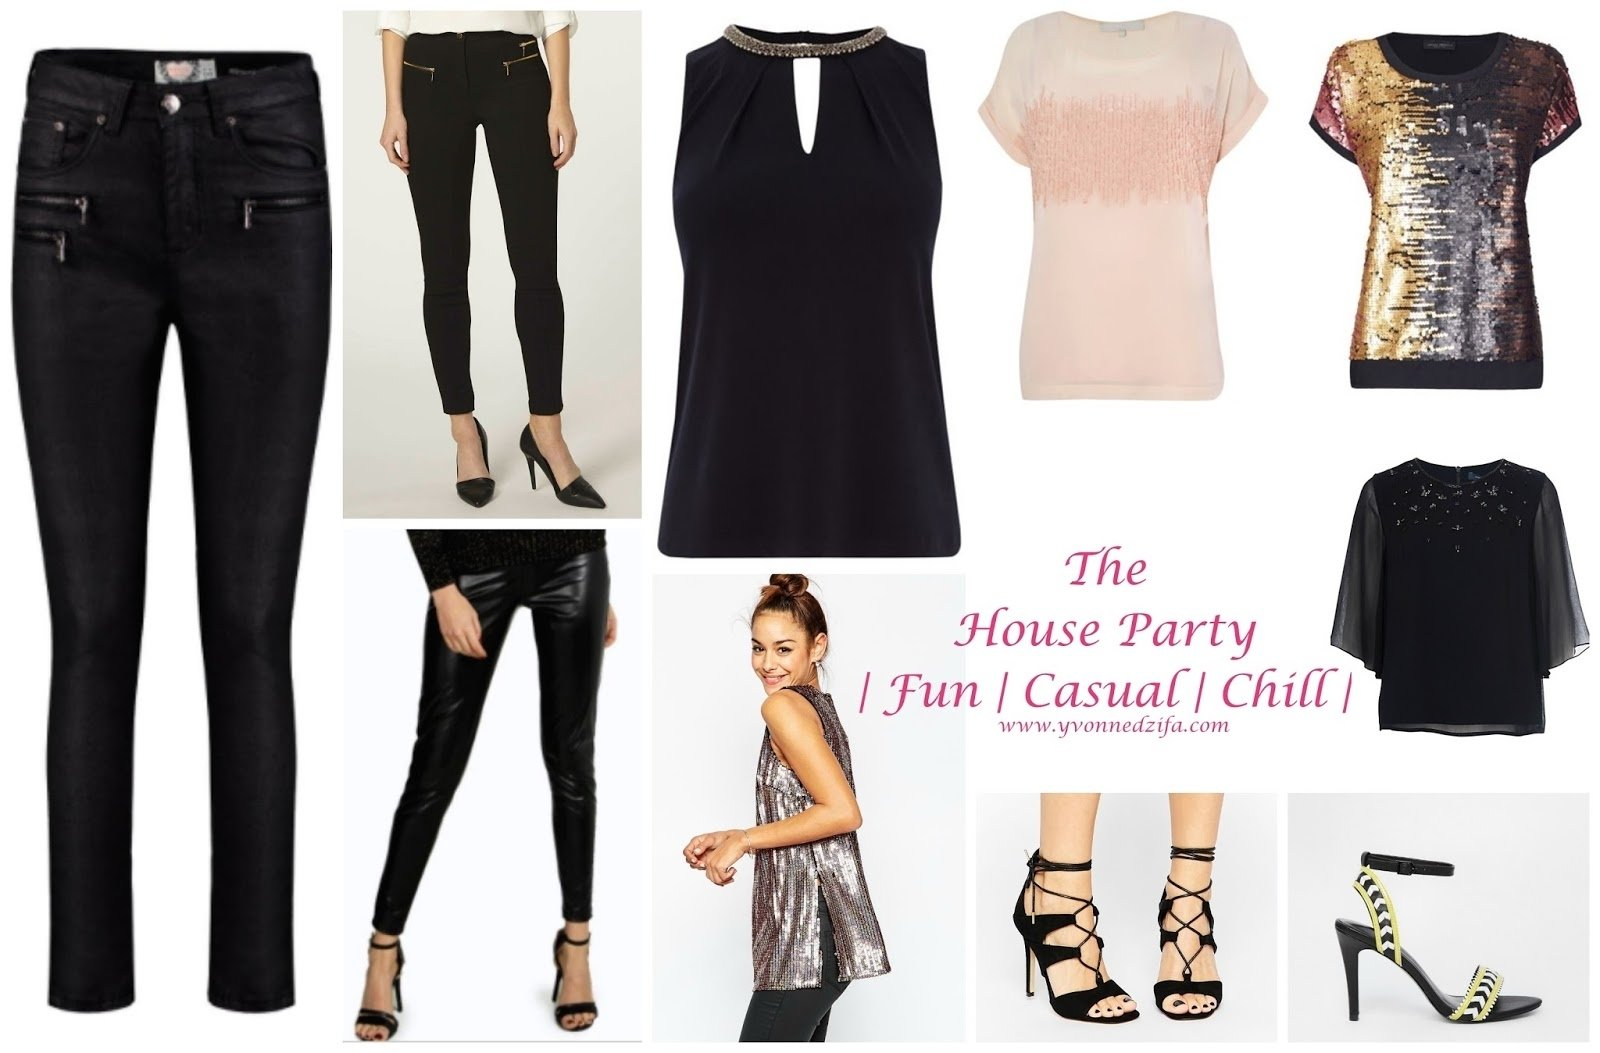 Imágenes de New Years Eve Outfit For House Party